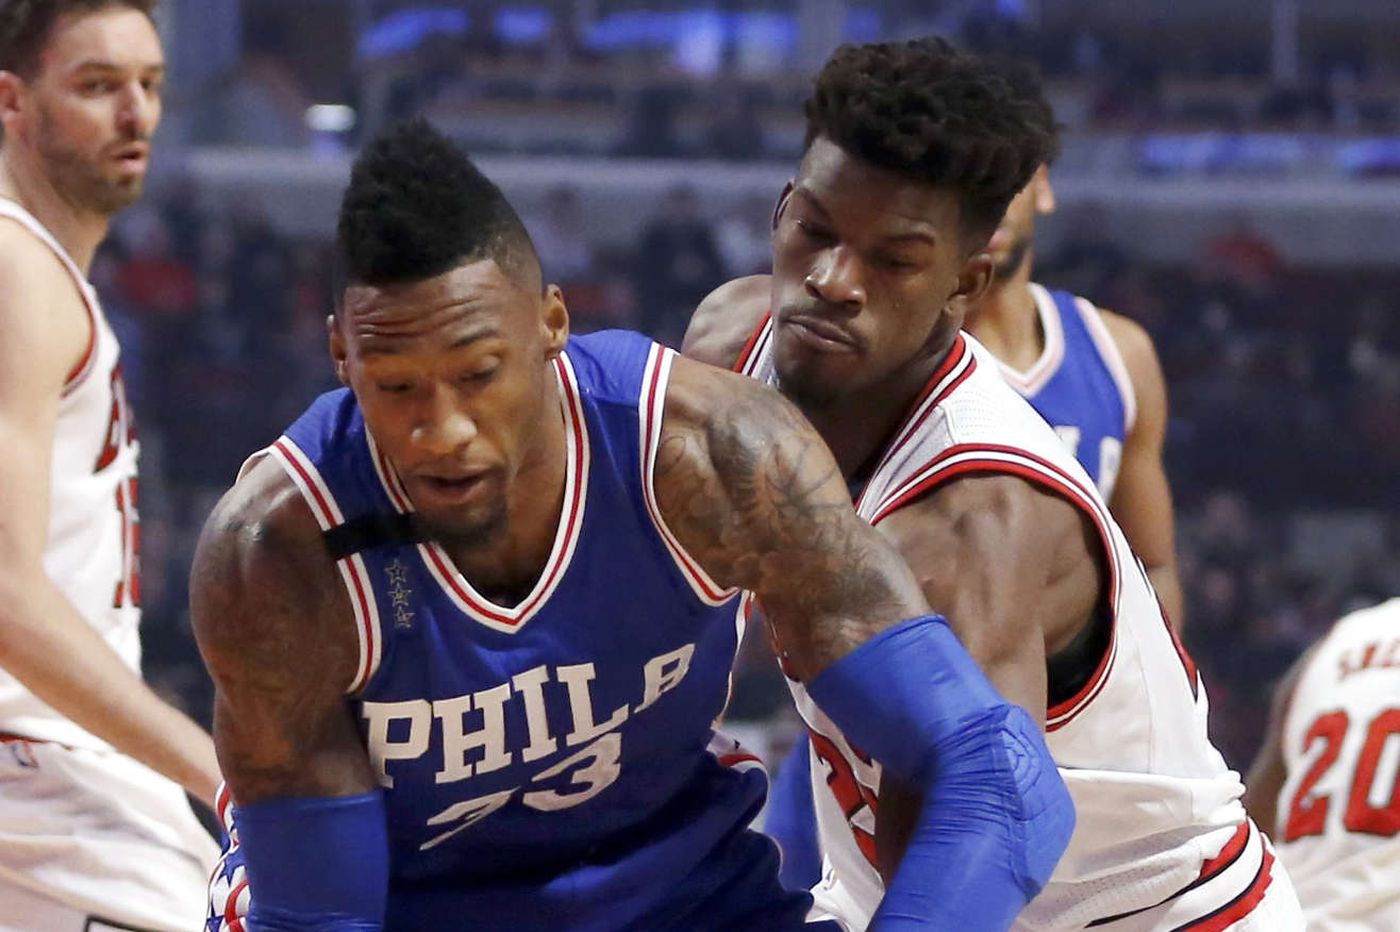 Bulls beat Sixers, spoil Chicago homecoming for some